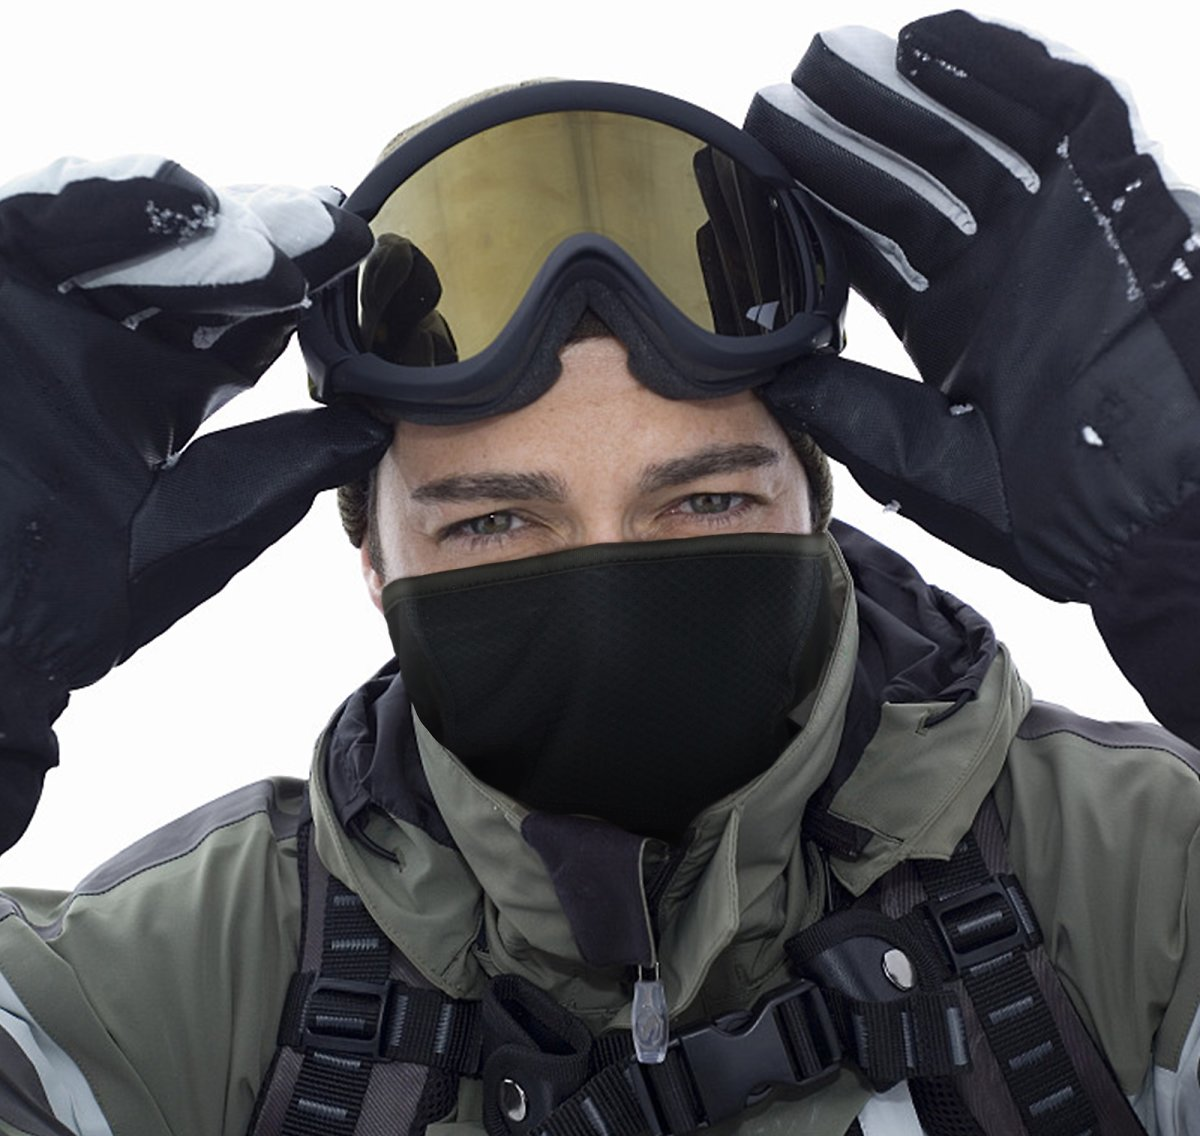 Save 50% On Neck Gaiter Warmer Winter Face Mask Cover for Cold Weather Windproof Breathable Ski Ma with Promo Code On Amazon.com